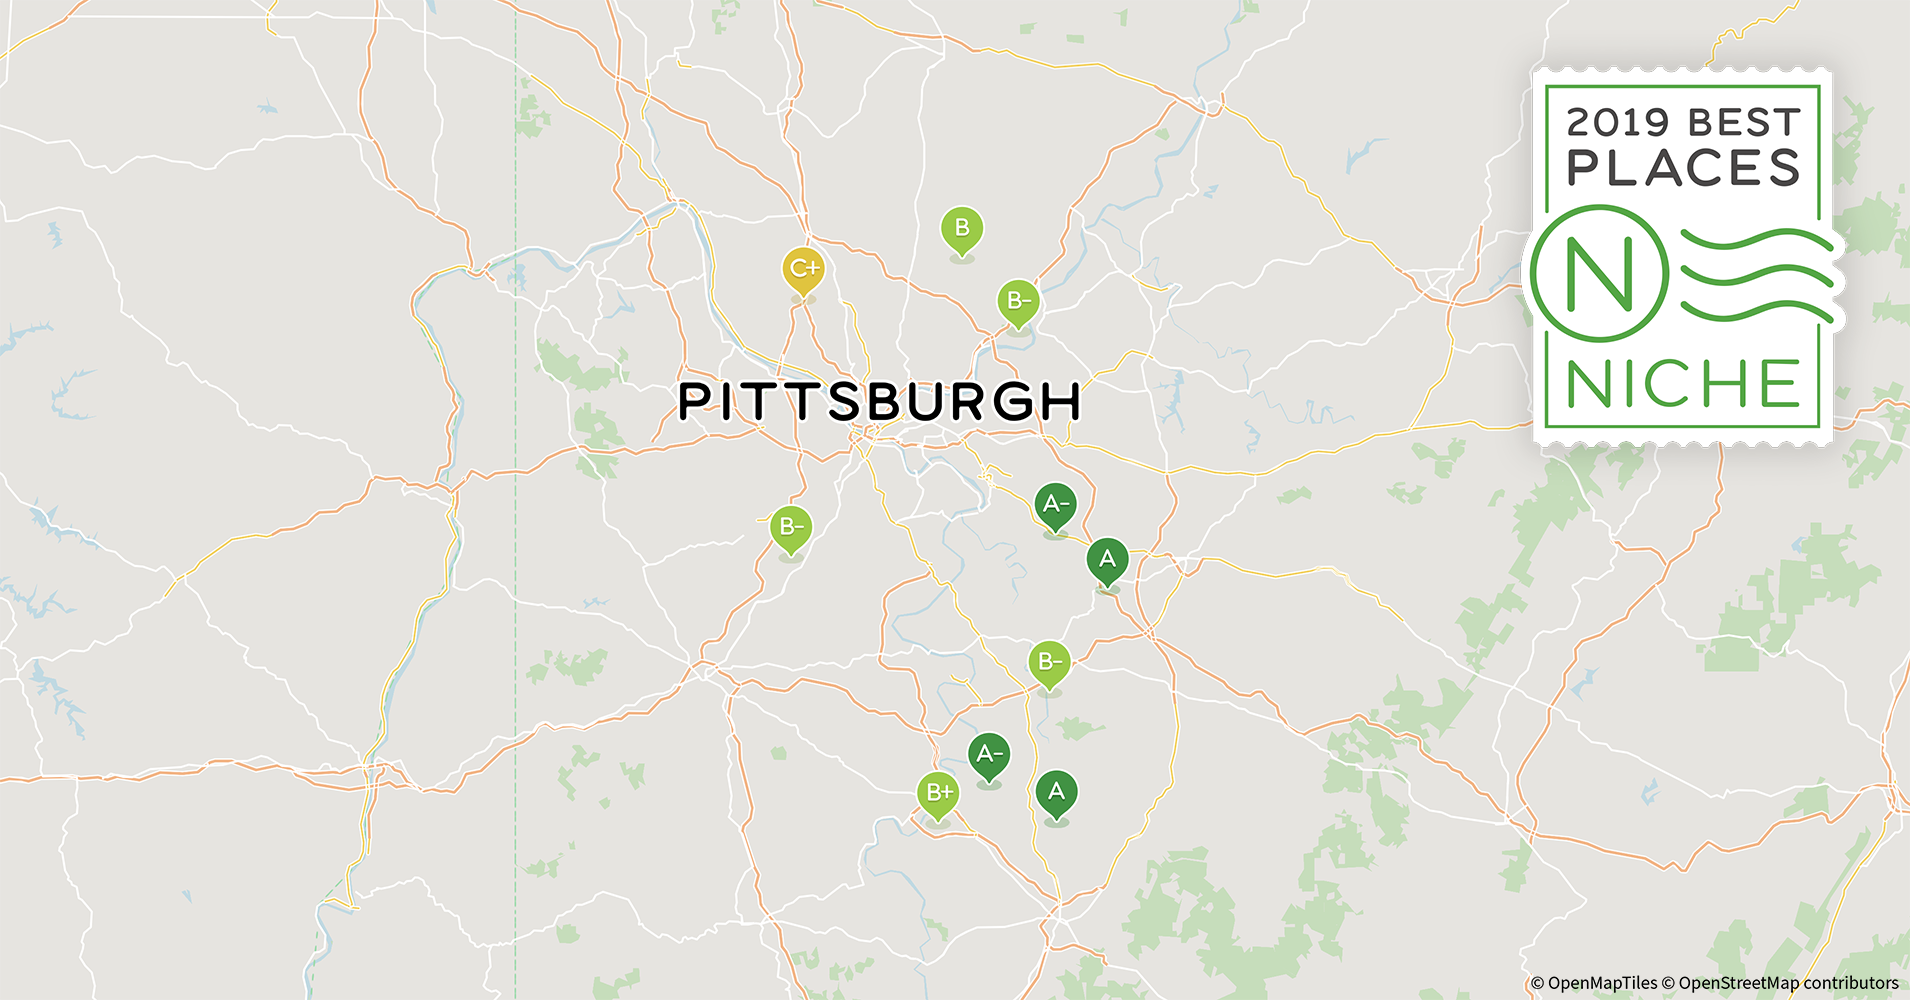 2019 Best Neighborhoods to Live in Pittsburgh Area - Niche